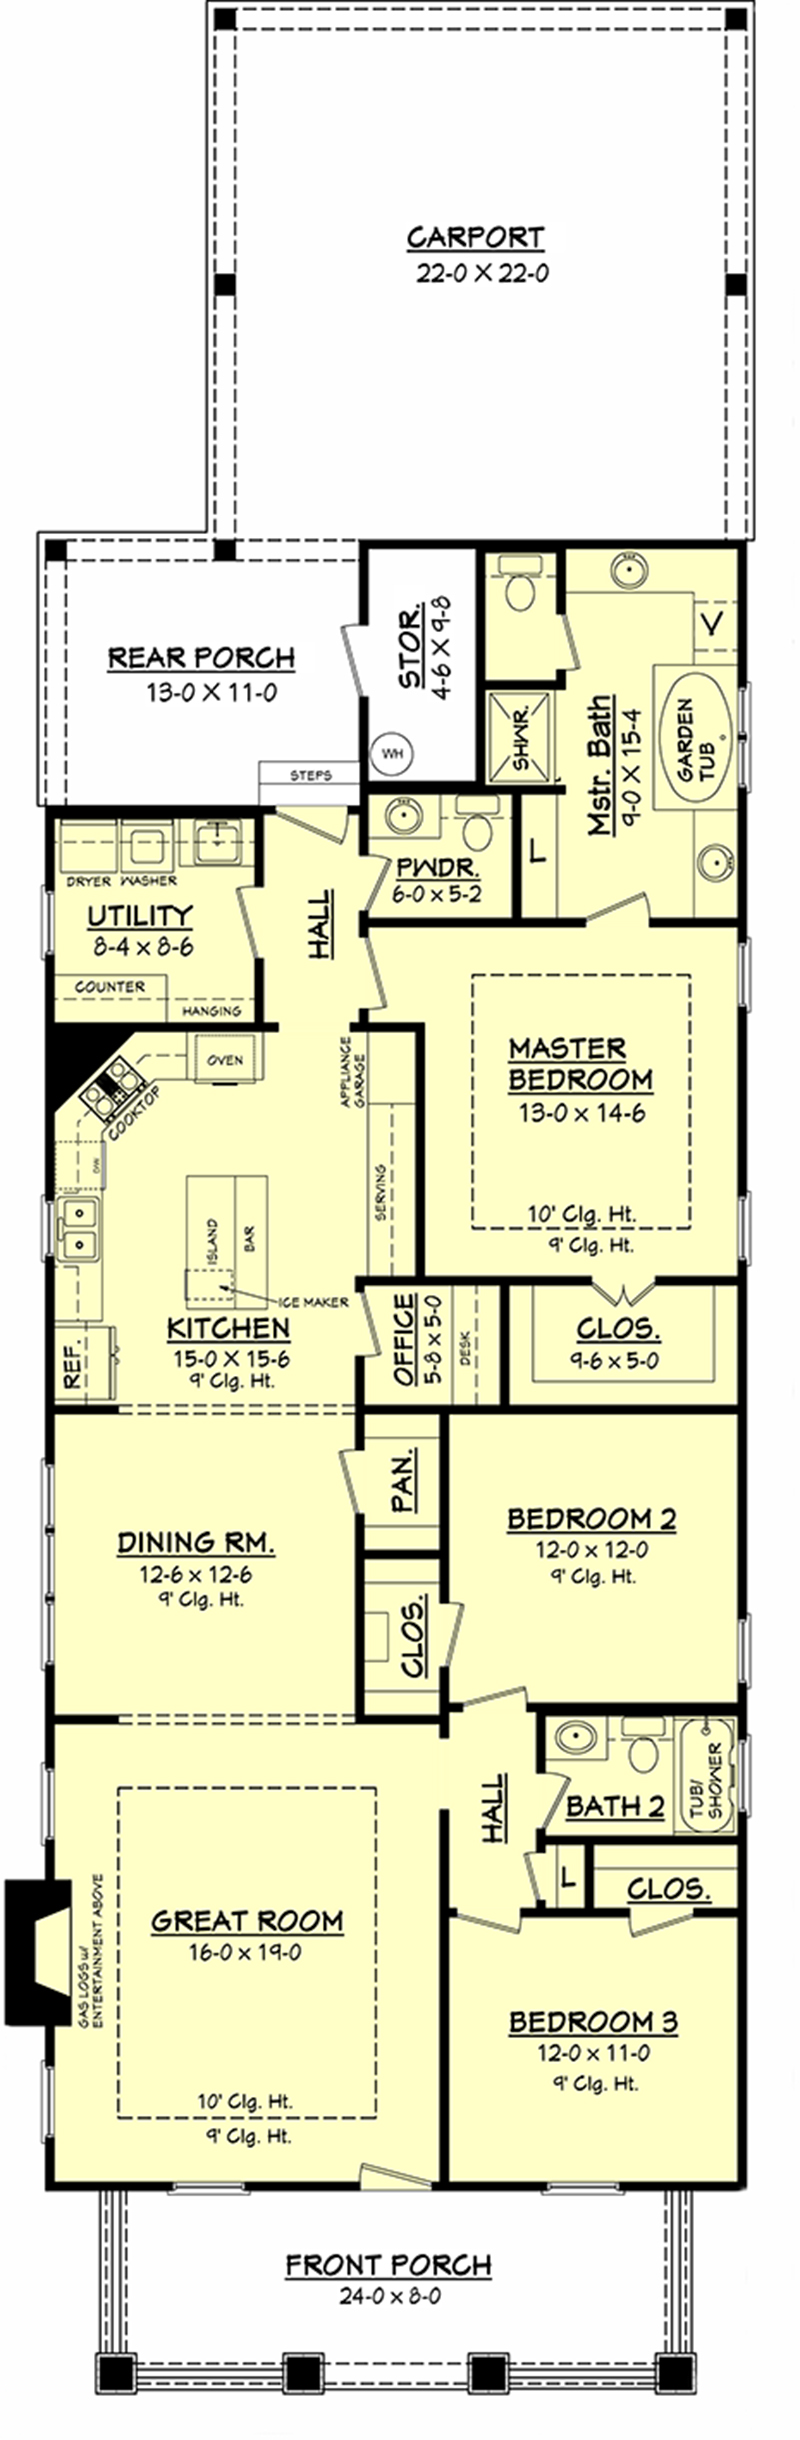 House plan 142 1079 3 bdrm 2 1 2 bath 1800 sq ft for Home plan com